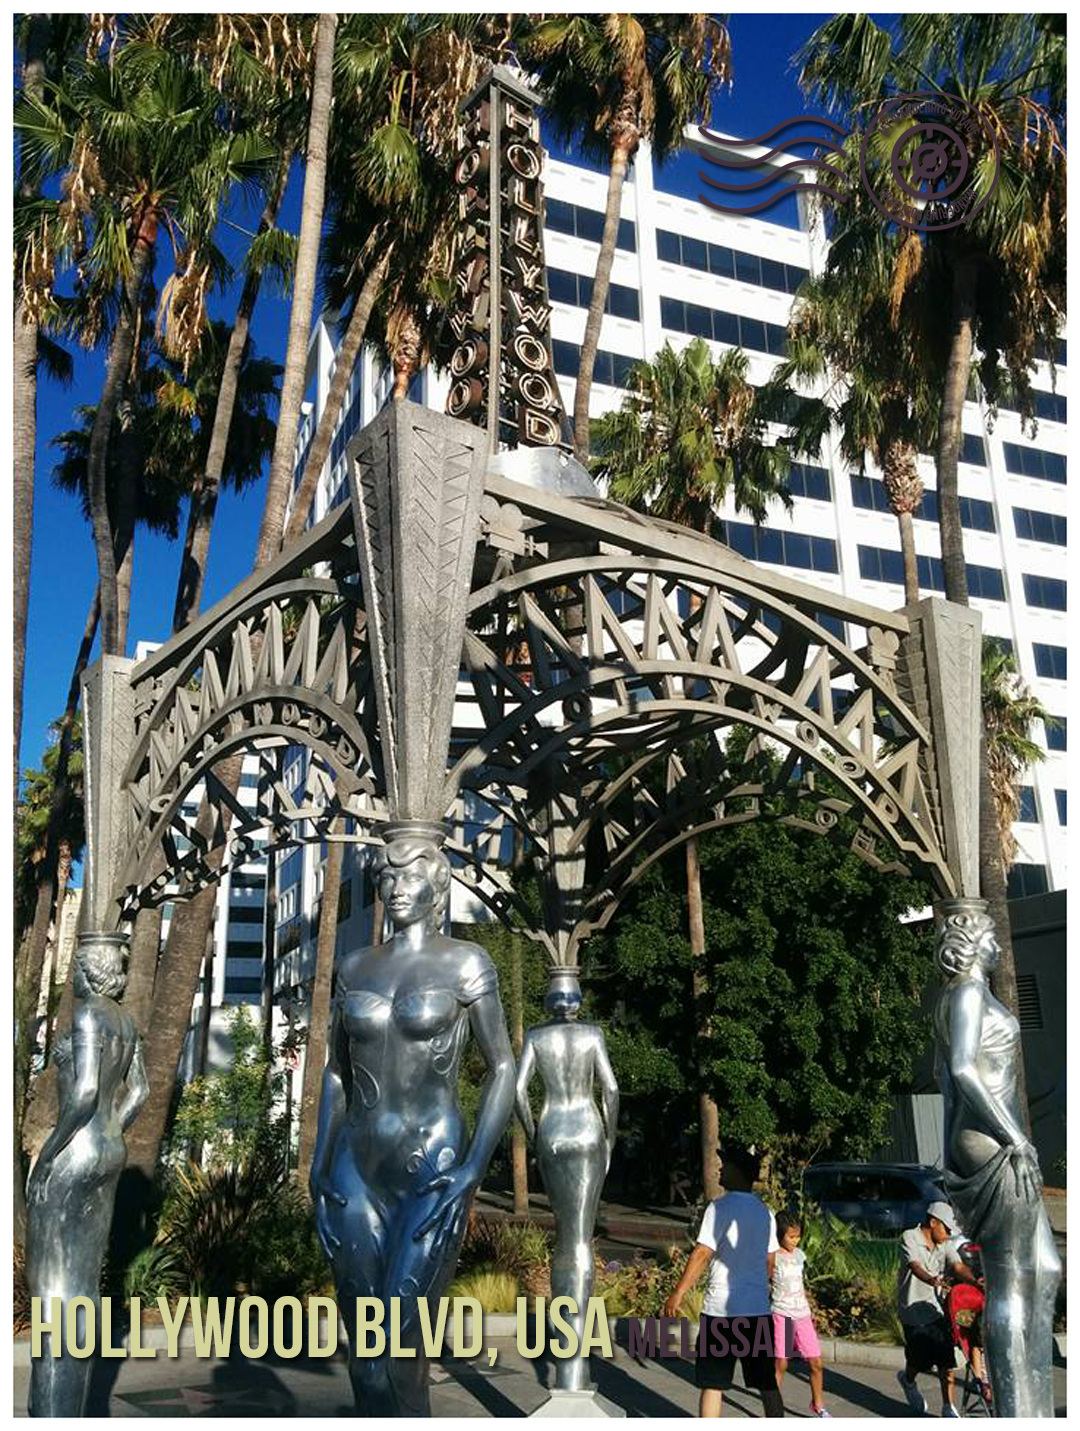 Hollywood Blvd, California, USA - Wandering postcard - postcards from around the world  My Wandering Voyage travel blog